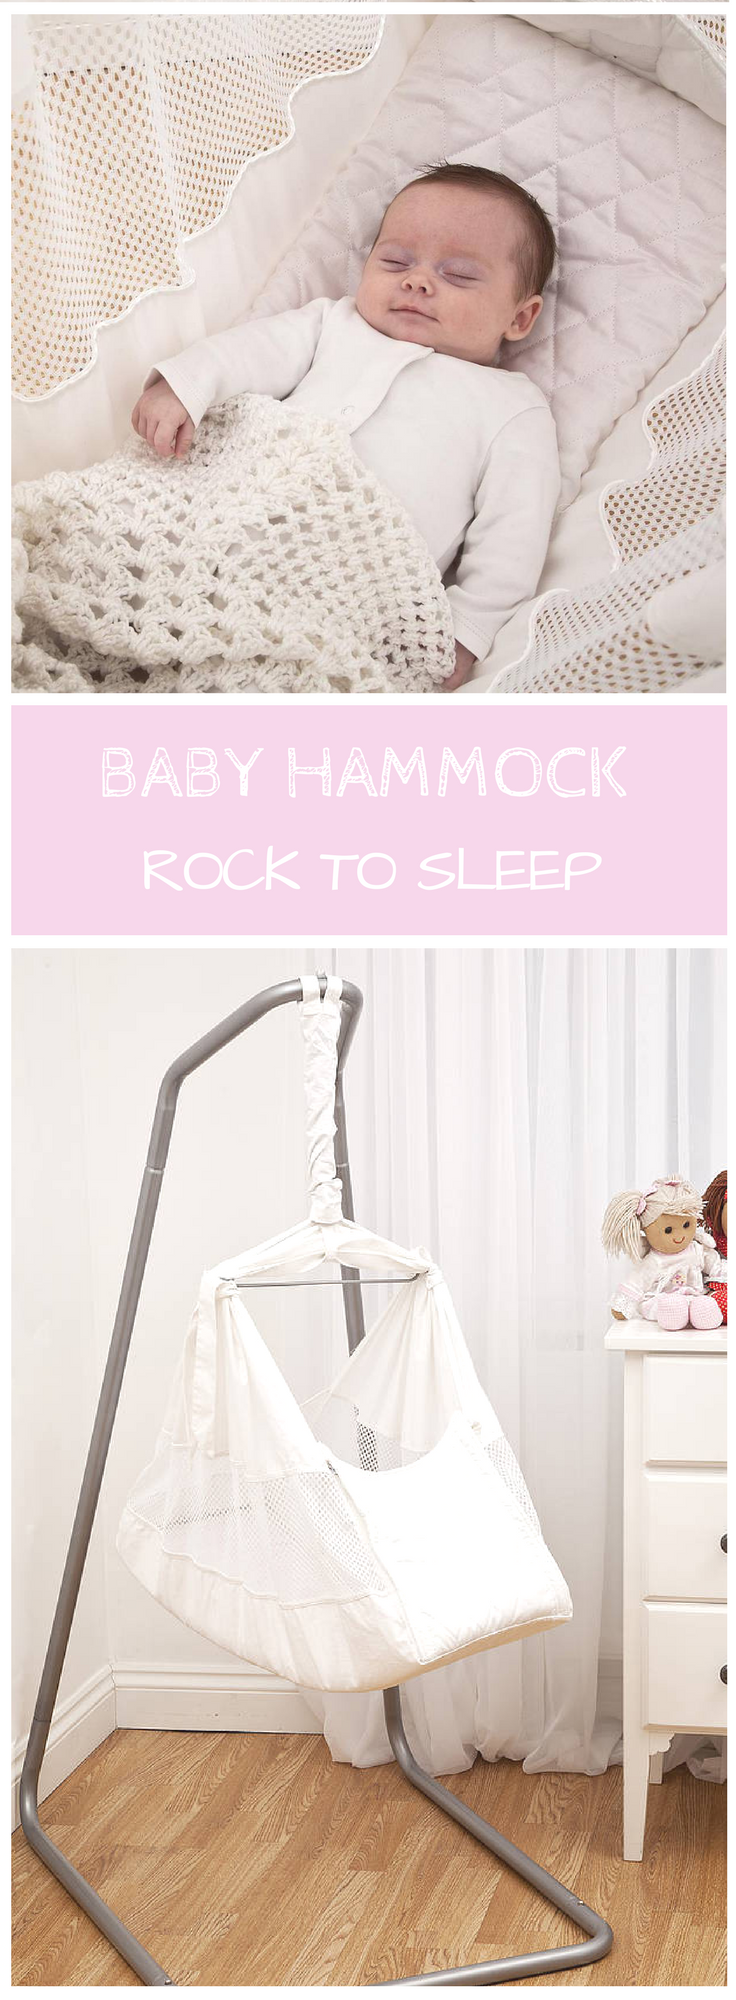 This baby hammock baby swing crib is so great it is really a must